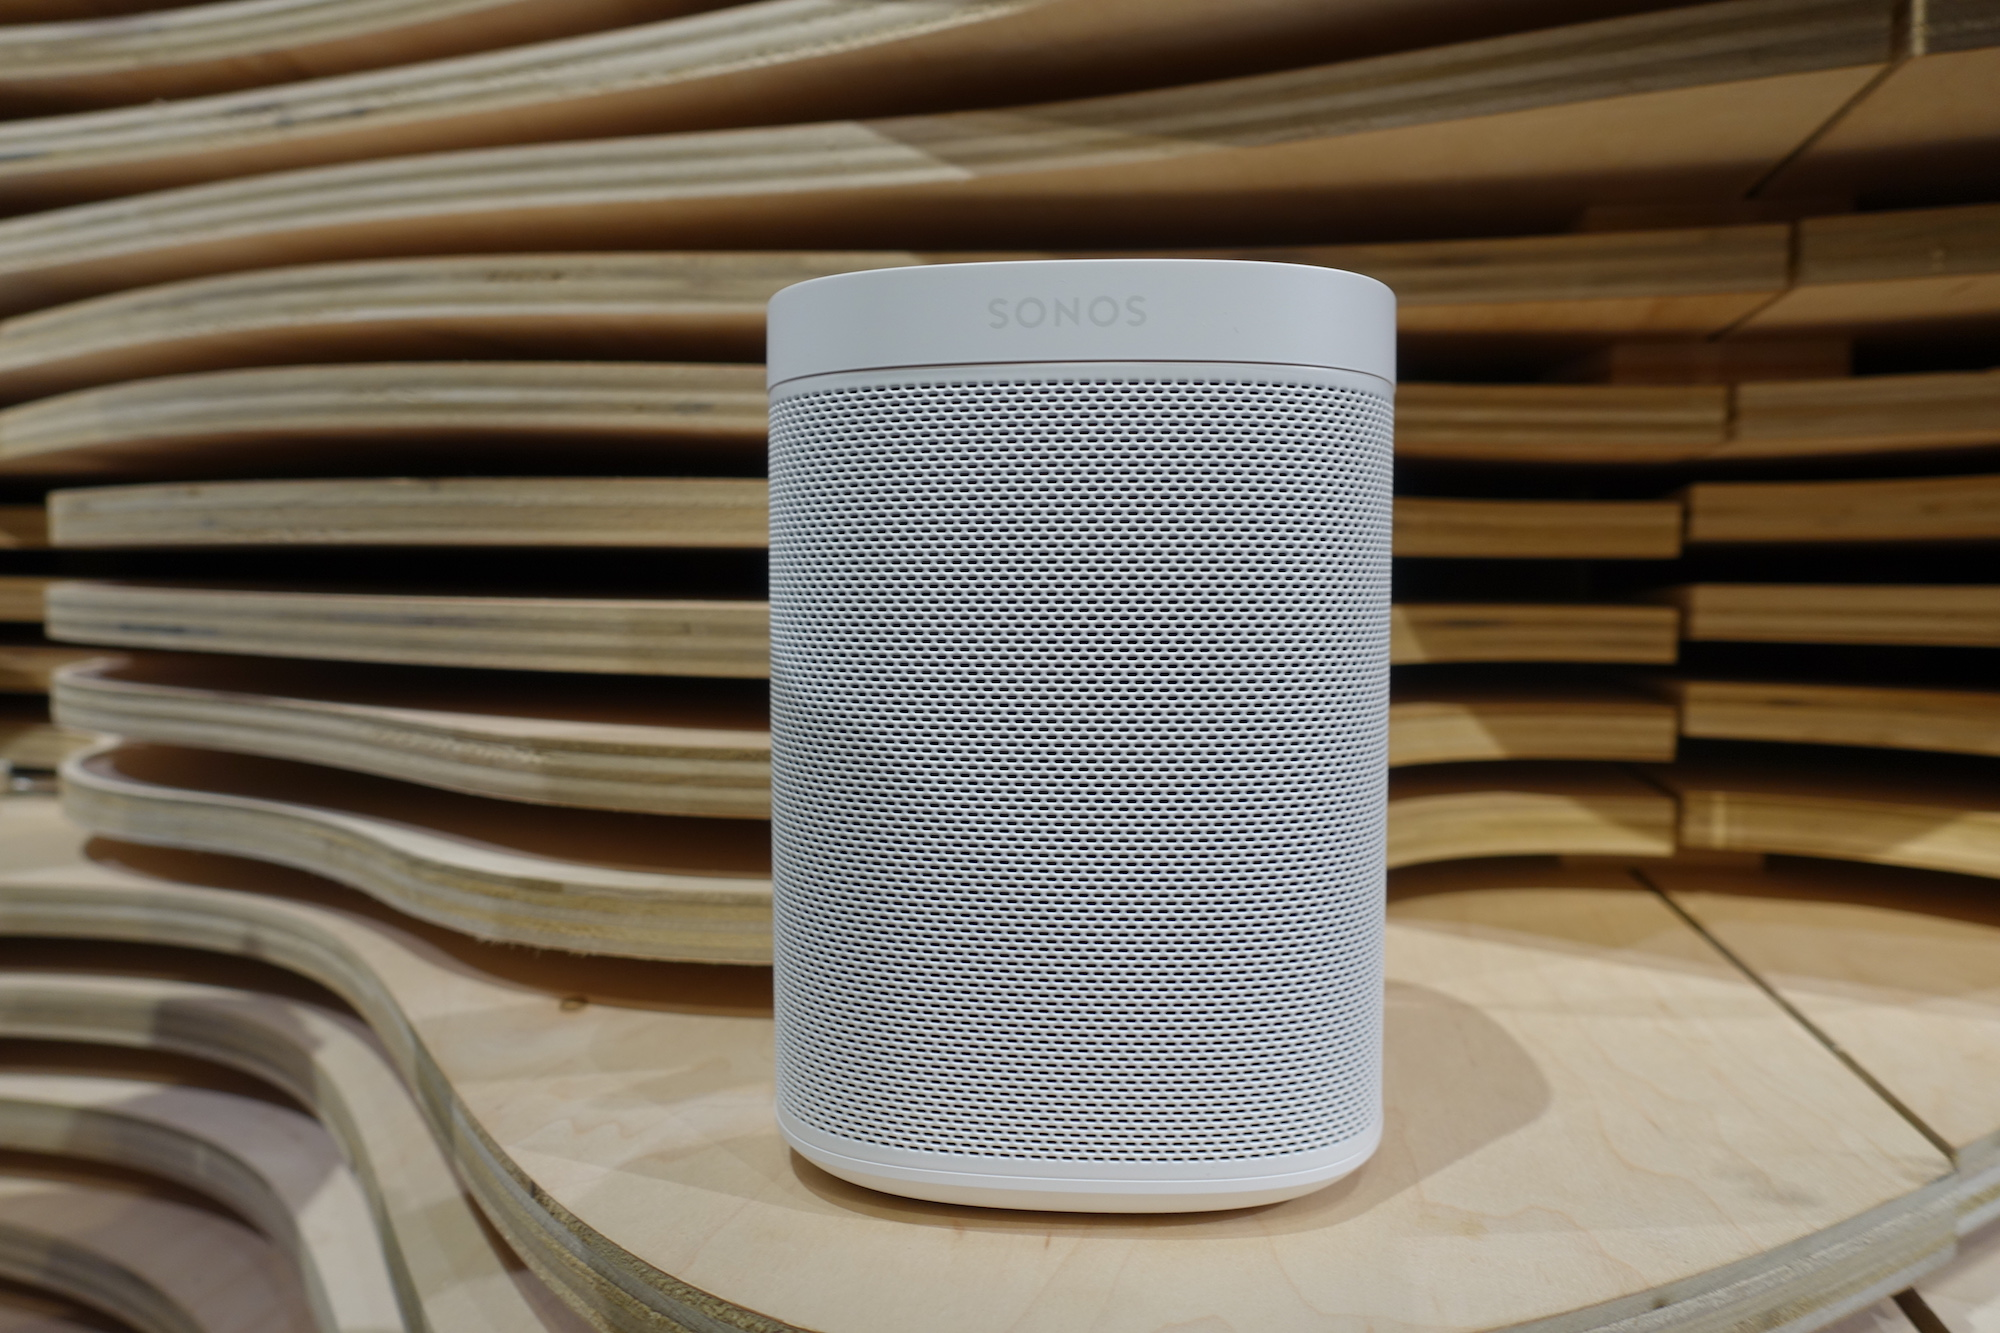 Echo dot hook up to sonos